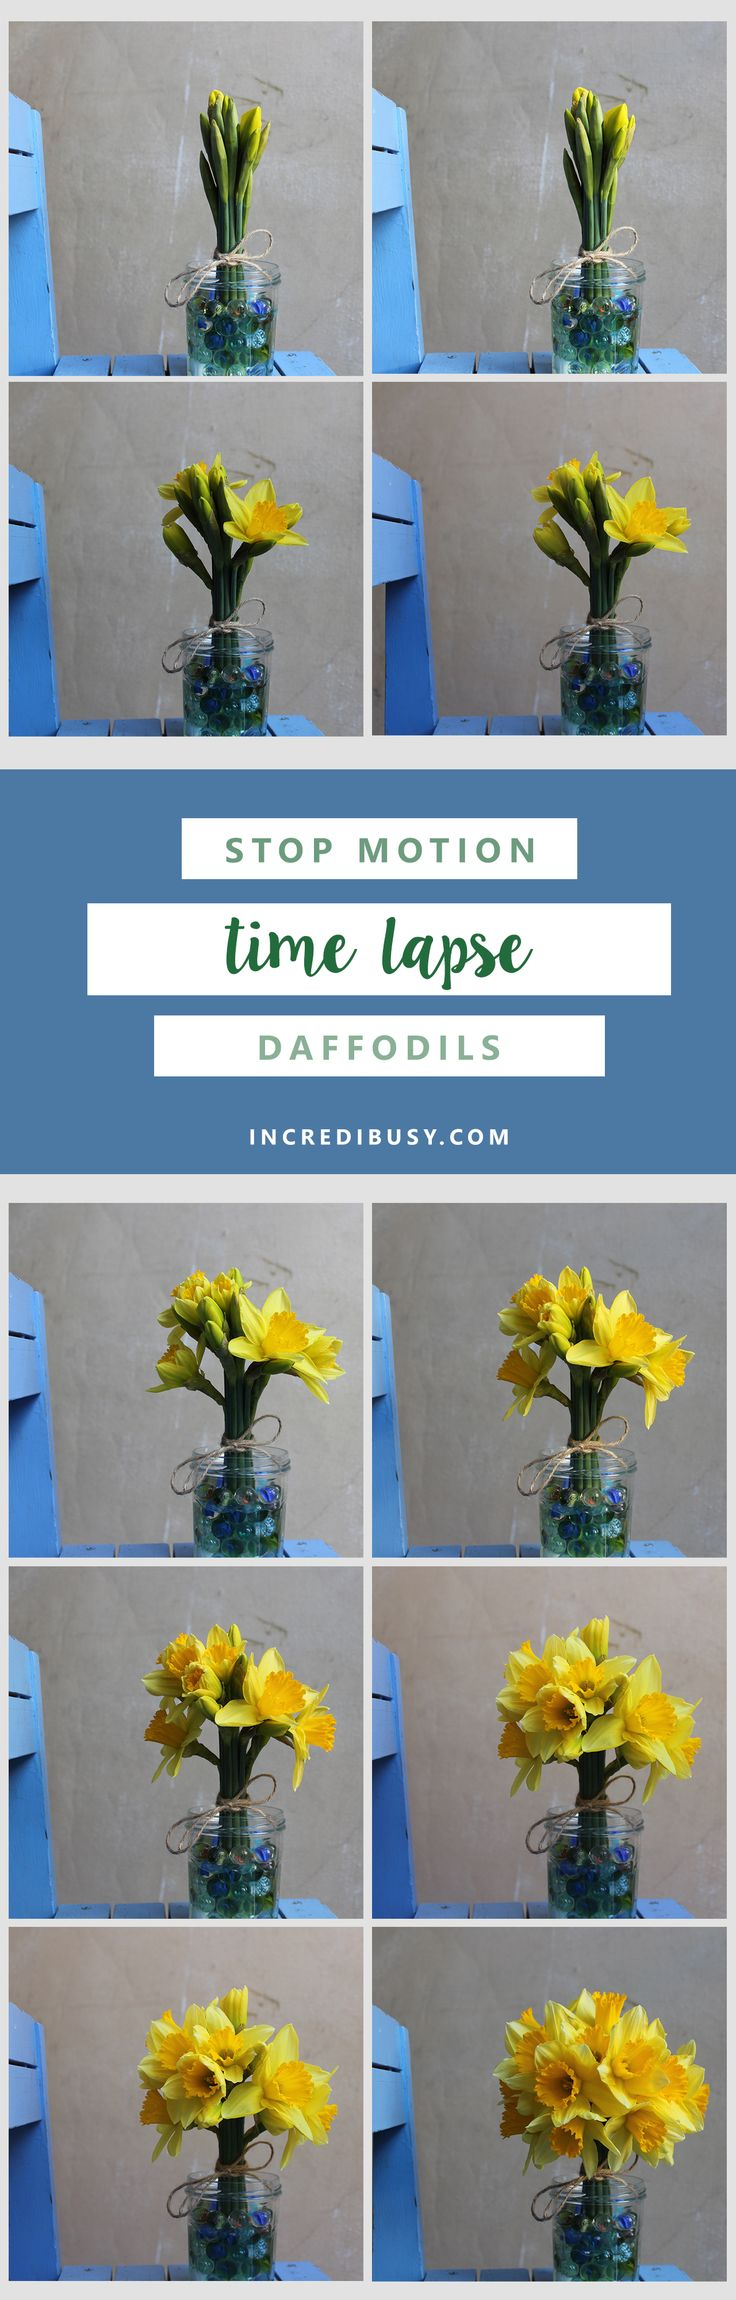 Stop Motion Animation - Daffodil Timelapse  Oh - this was quite a project - we shot these stills of daffodils over a period of four days, two years ago to the day!  We tried to make a stop FRAME/timelapse video back then and just couldn't get it to work - so today we had a go with StopMotion app on the iPhone.  Why did it take so long to photograph? We set the camera up in front of the Daffodils, and using a blue tooth remote control